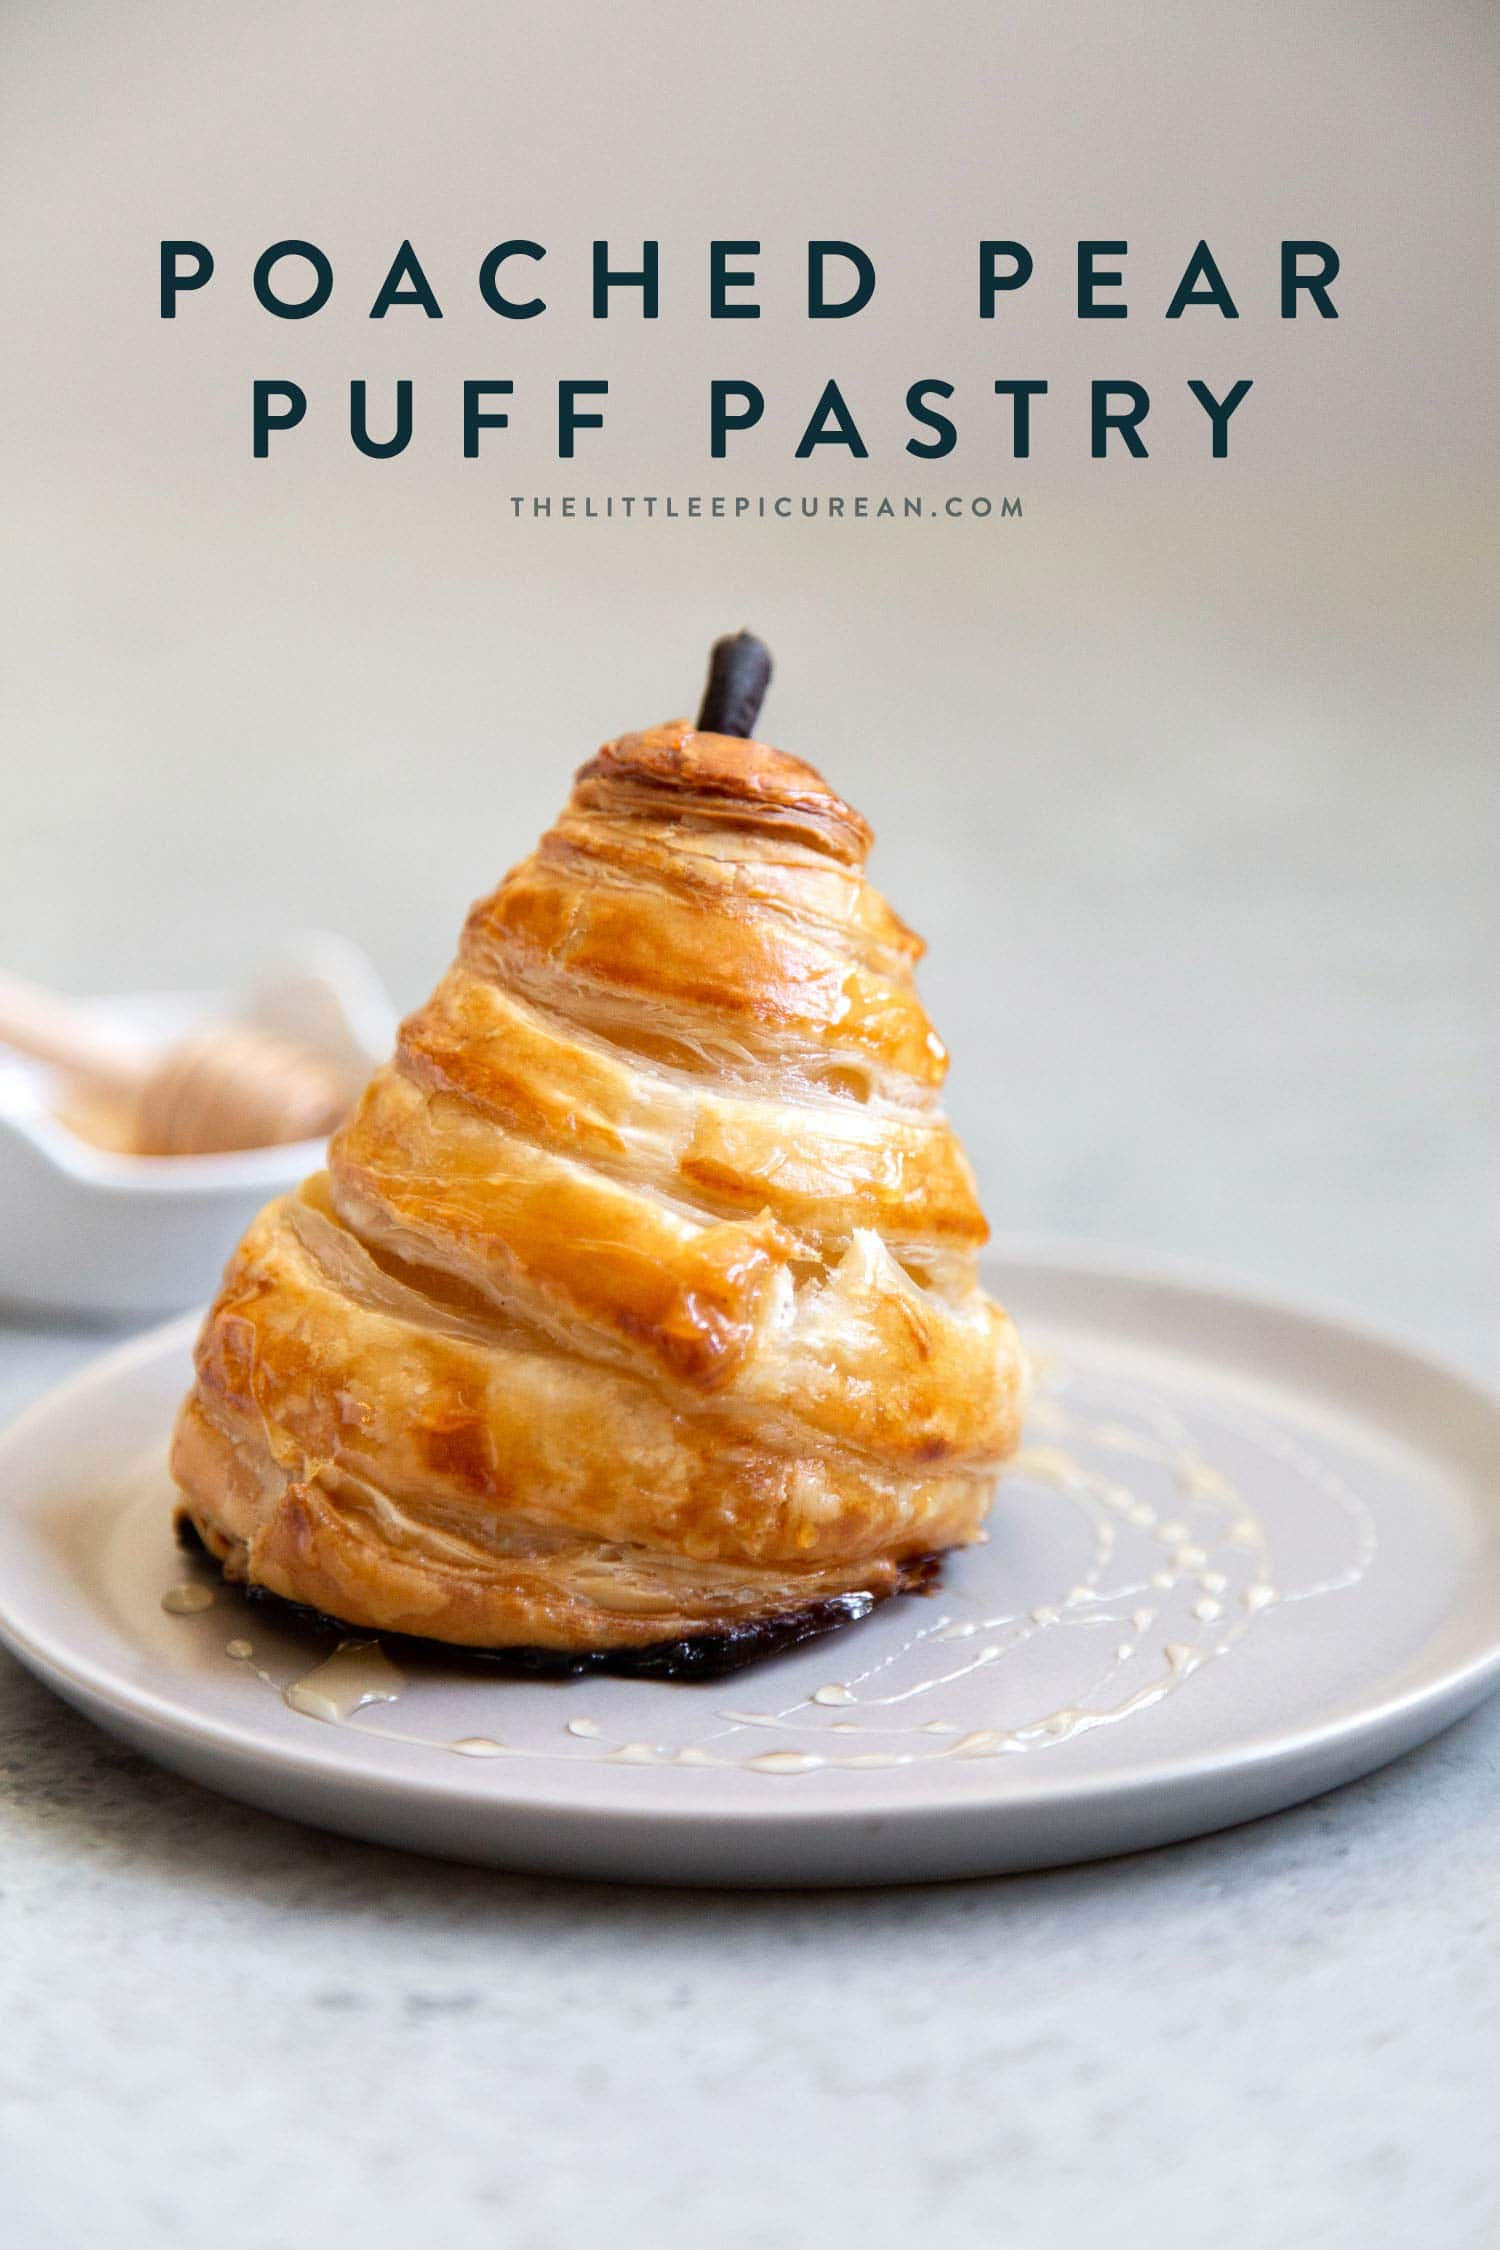 Poached Pear Puff Pastry. Pears poached in sweet vanilla cinnamon liquid. Encased in puff pastry and baked until golden. #pear #peardessert #falldessert #puffpastry